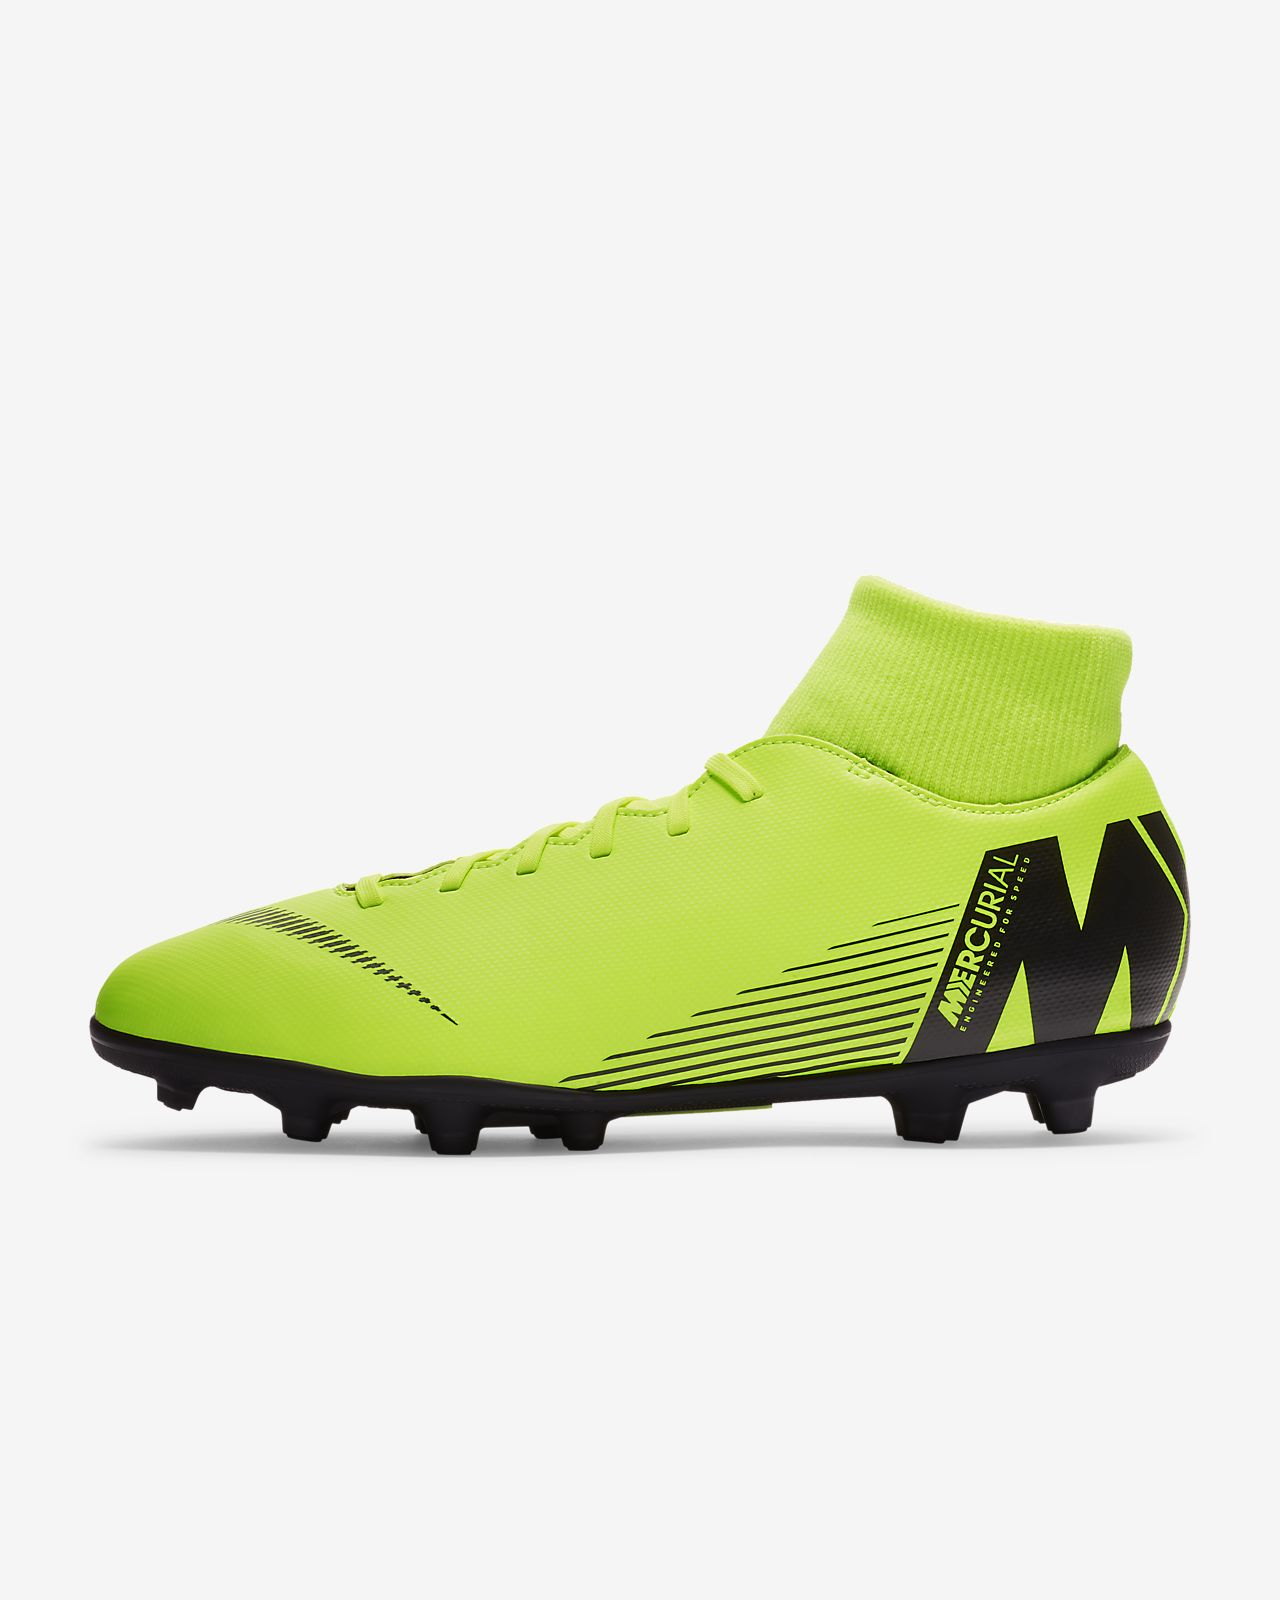 buy online f9f5d 6e172 Chaussure de football multi-terrains à crampons Nike Mercurial Superfly VI  Club